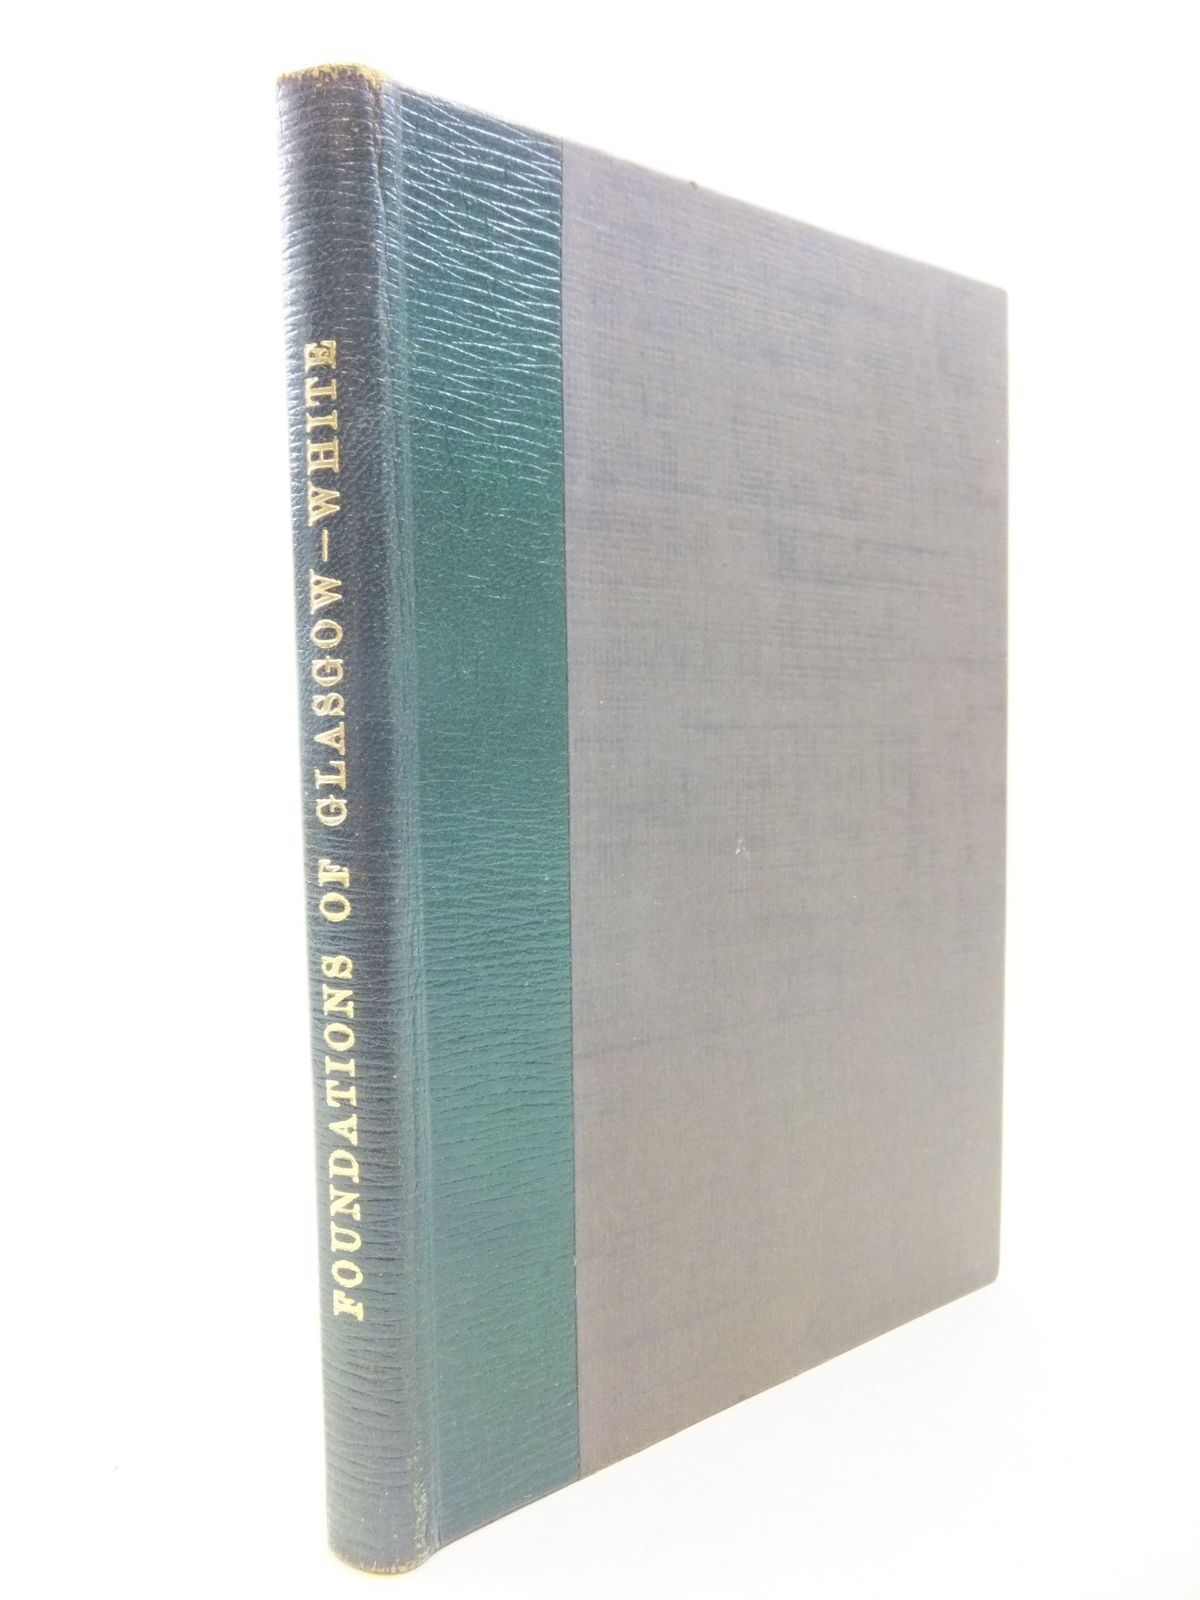 Photo of FOUNDATIONS OF GLASGOW written by White, James published by The University Press, Glasgow (STOCK CODE: 2113678)  for sale by Stella & Rose's Books